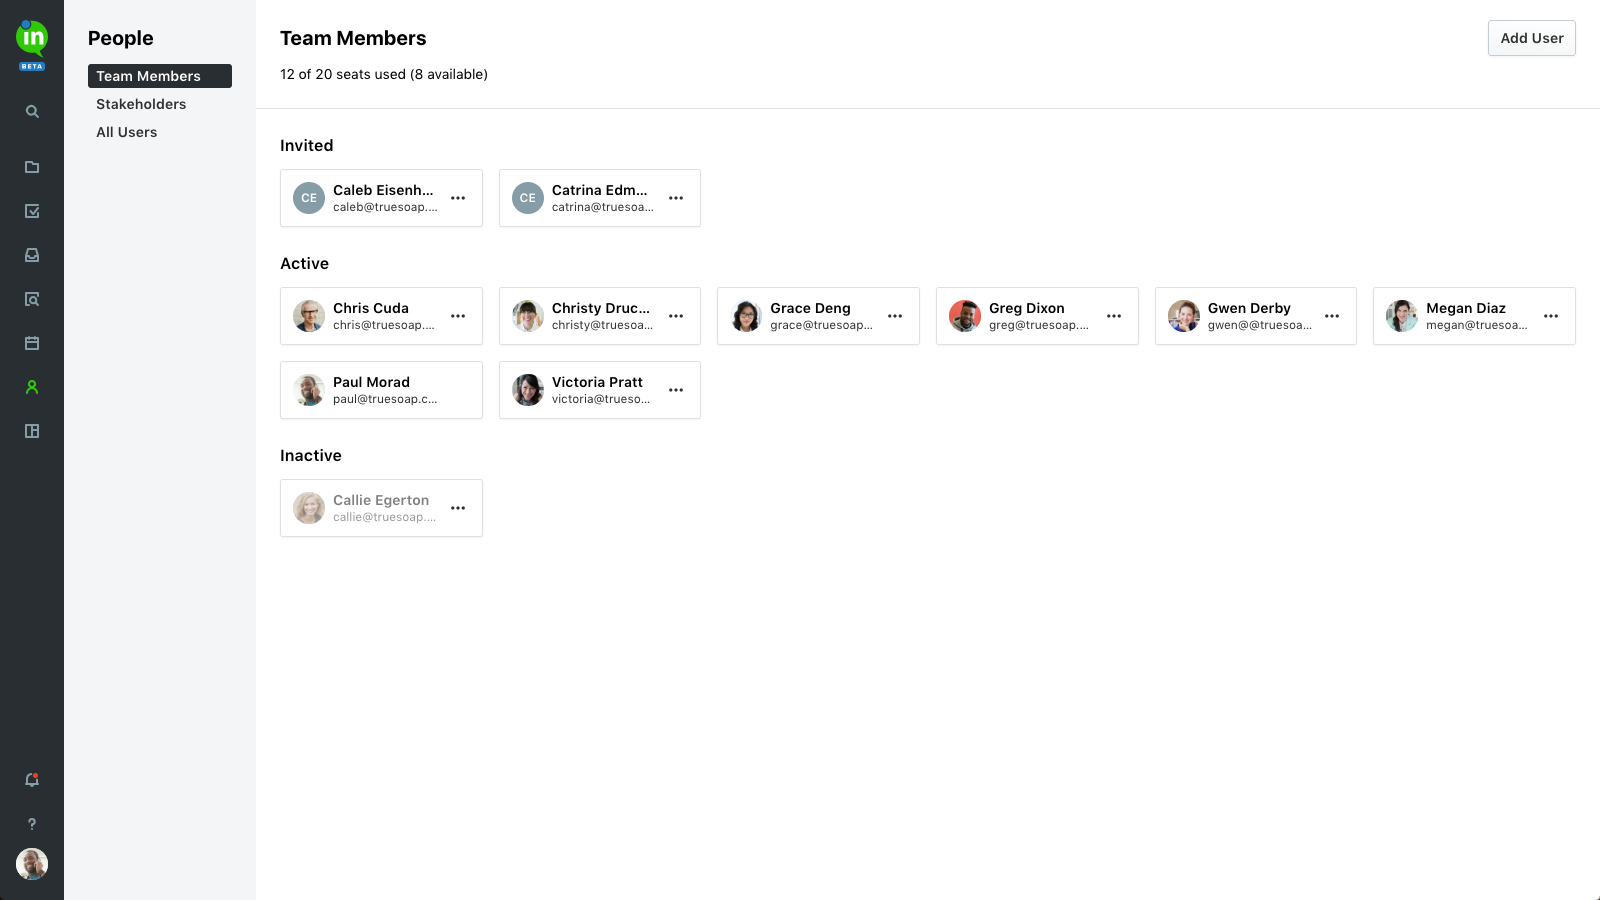 Admins can manage active team members, user roles, and stakeholders from the People page. Easily add new users, deactivate old ones, and update user access in one place.